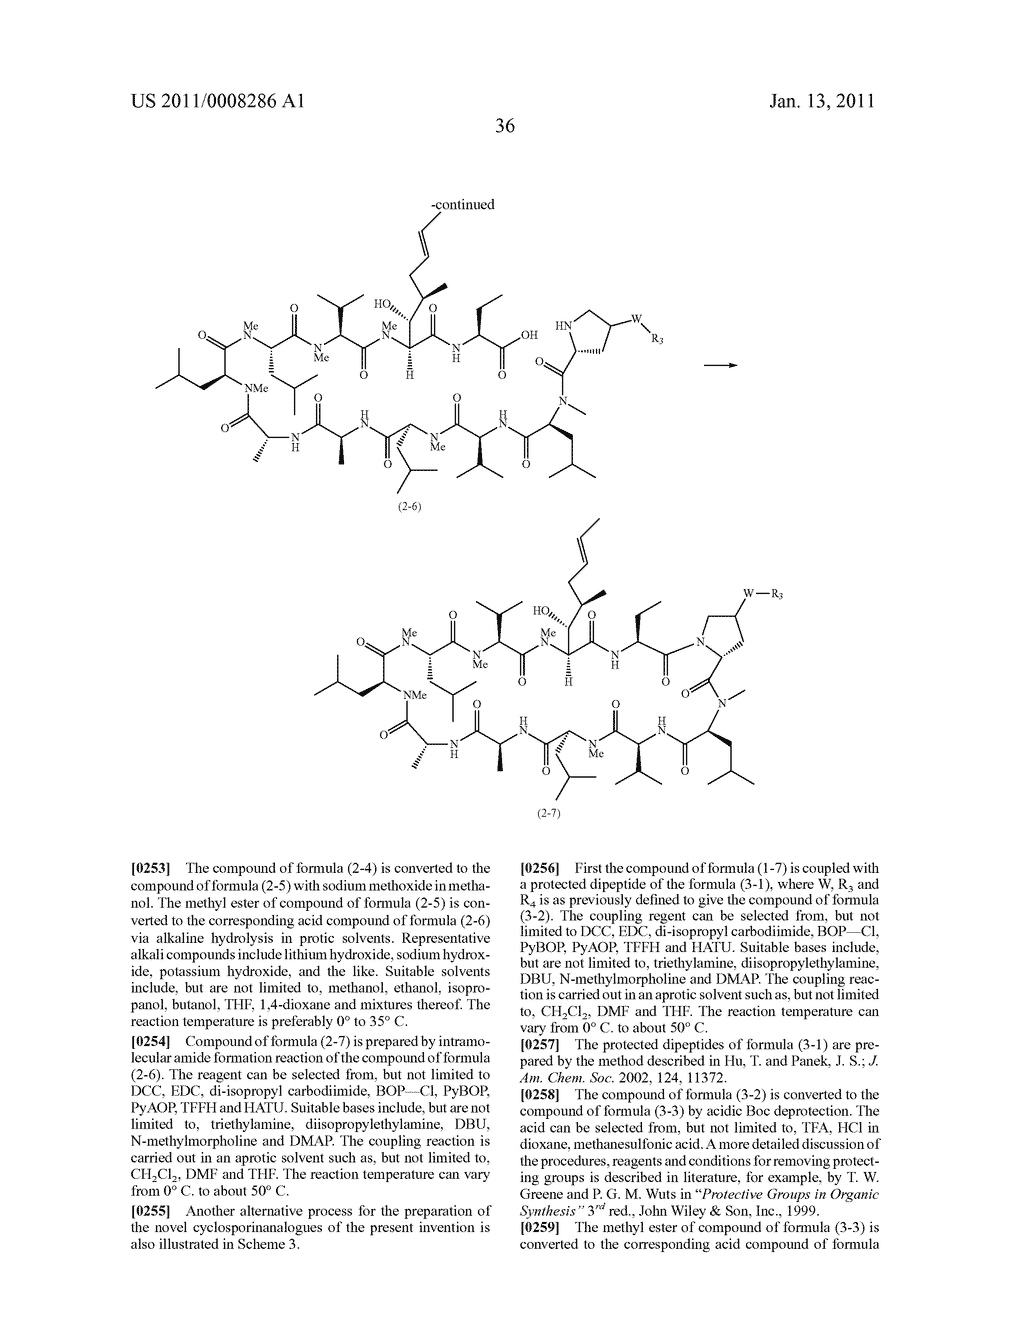 NOVEL PROLINE SUBSTITUTED CYCLOSPORIN ANALOGUES - diagram, schematic, and image 37